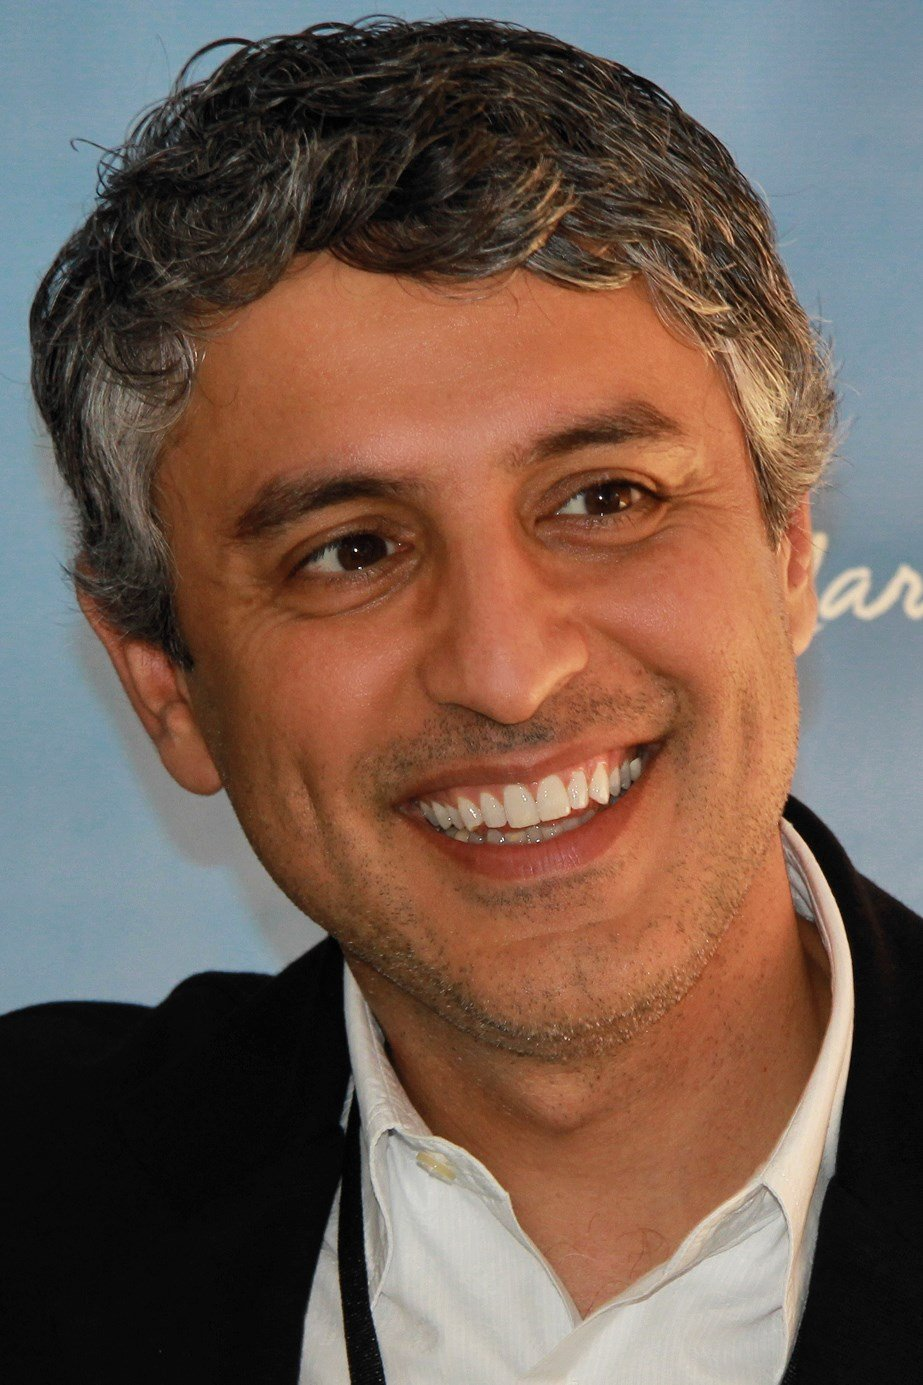 Documentary producer and religious scholar Reza Aslan is the second CNN personality to be booted for making disparaging toward President Donald Trump on social media.